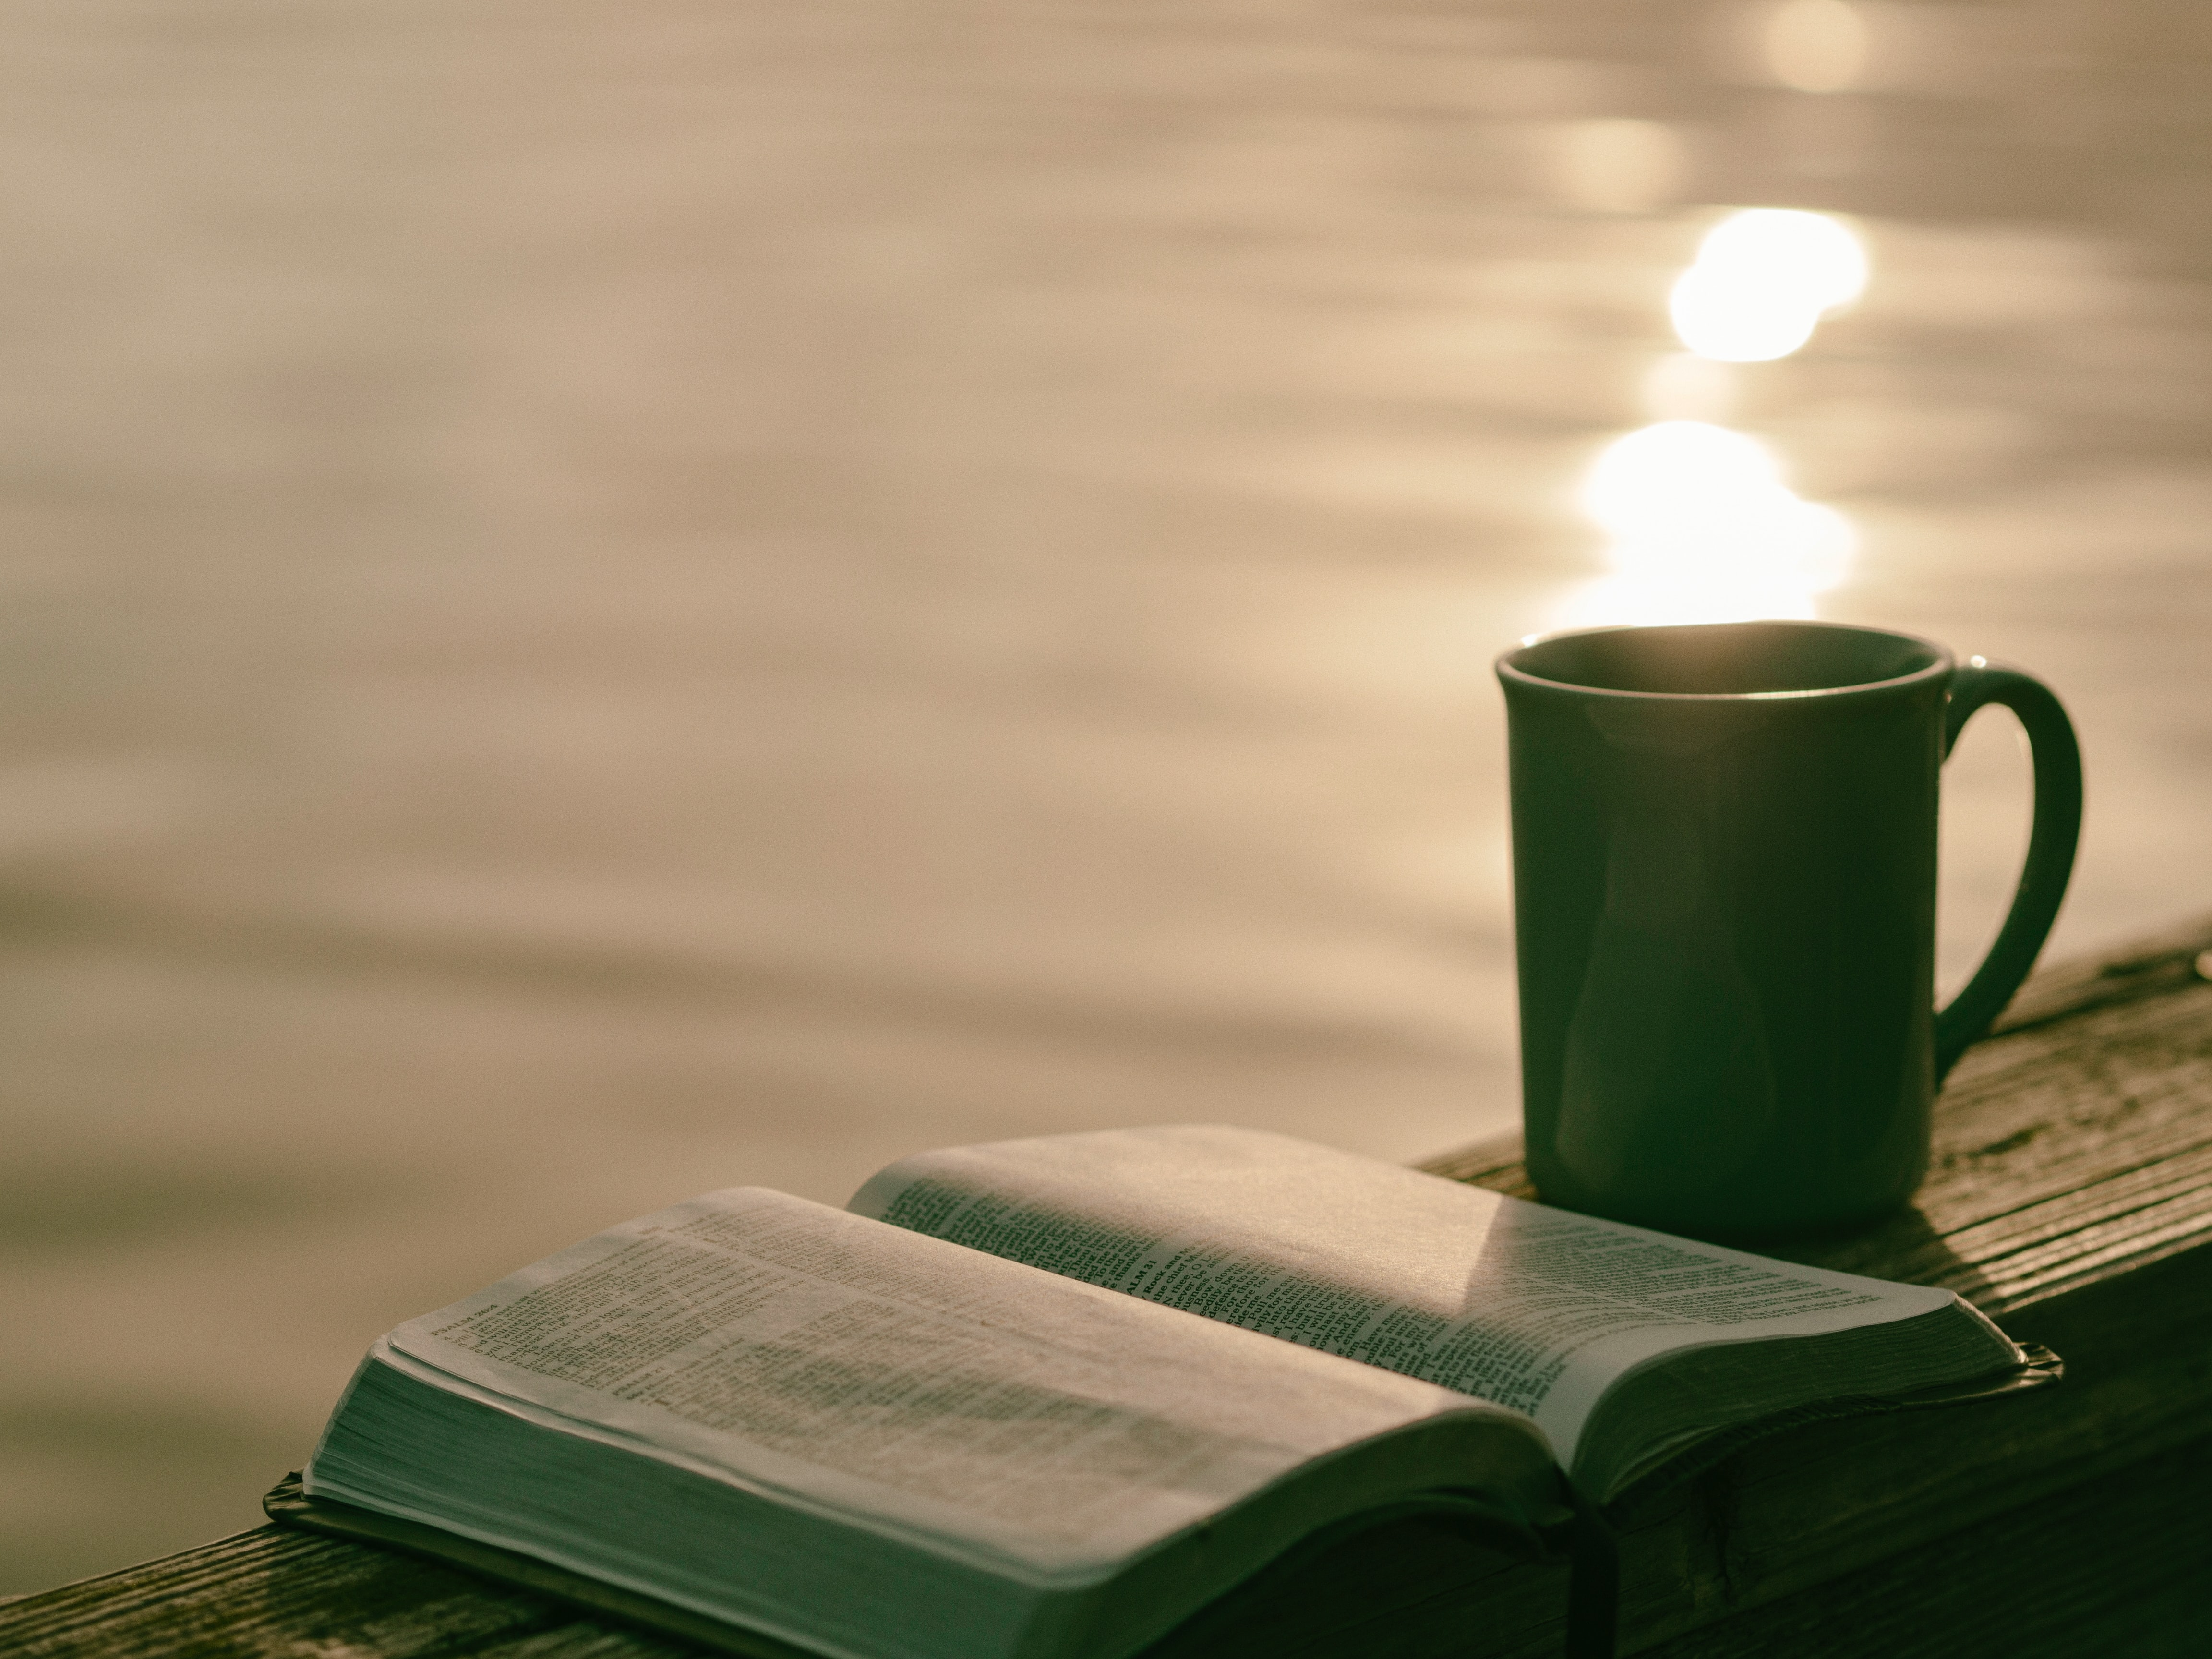 coffee and a bible by the water